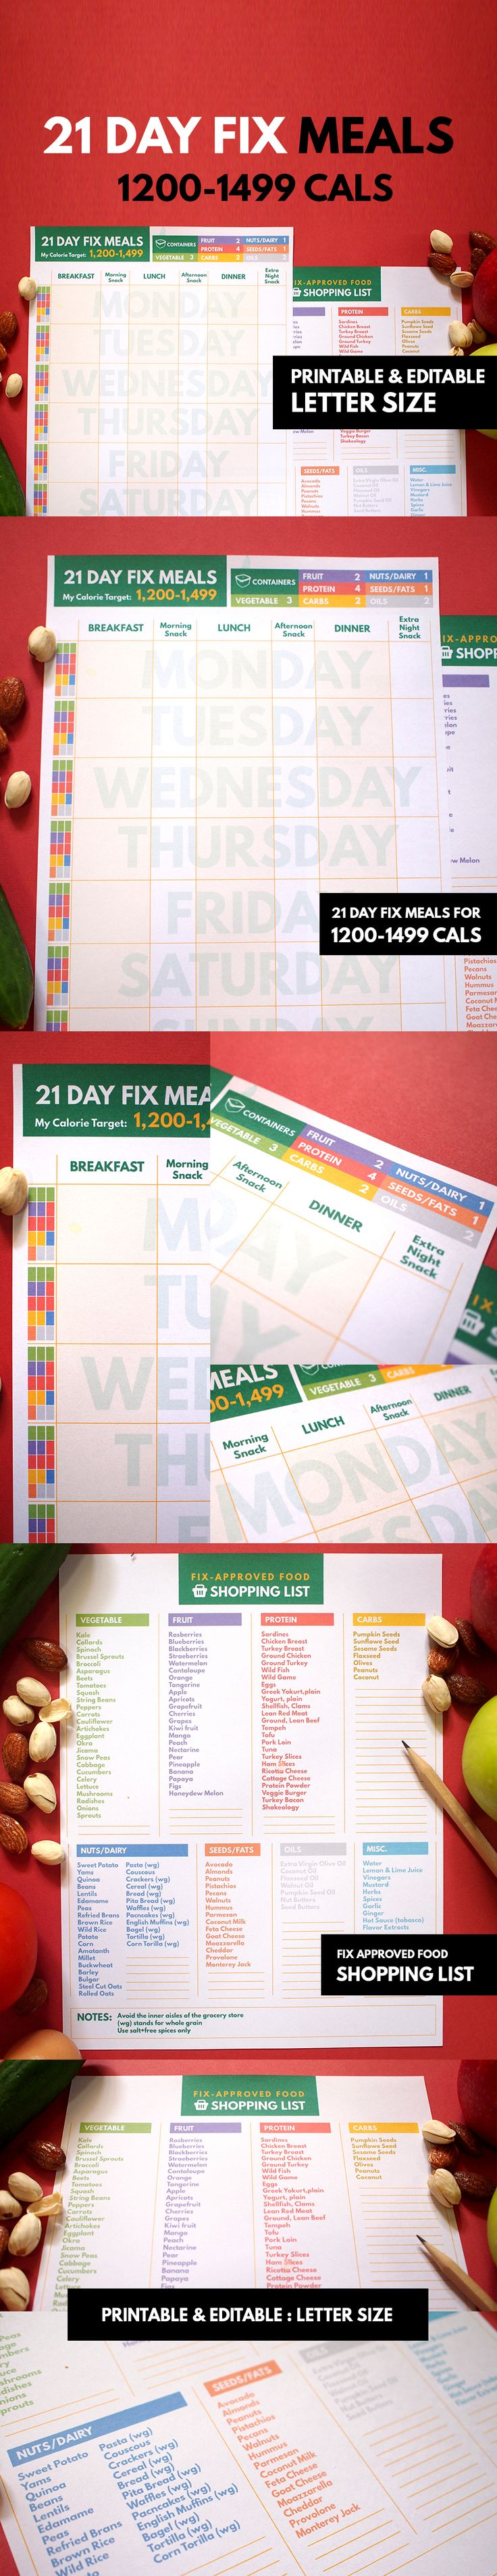 21 Day Fix Planner ALL IN ONE ▹ for 1,200-1,499 calorie range Printable & Editable  This is COMPLETE planner for helping you reaching the GOAL while completing a BEACHBODY 21-Day Fix plan.  These are Editable PDF files so you can put your information before print out or write on it later. Minimal Layout and Colorful design to bright up and encourage you to keep WORKOUT until you're fit!